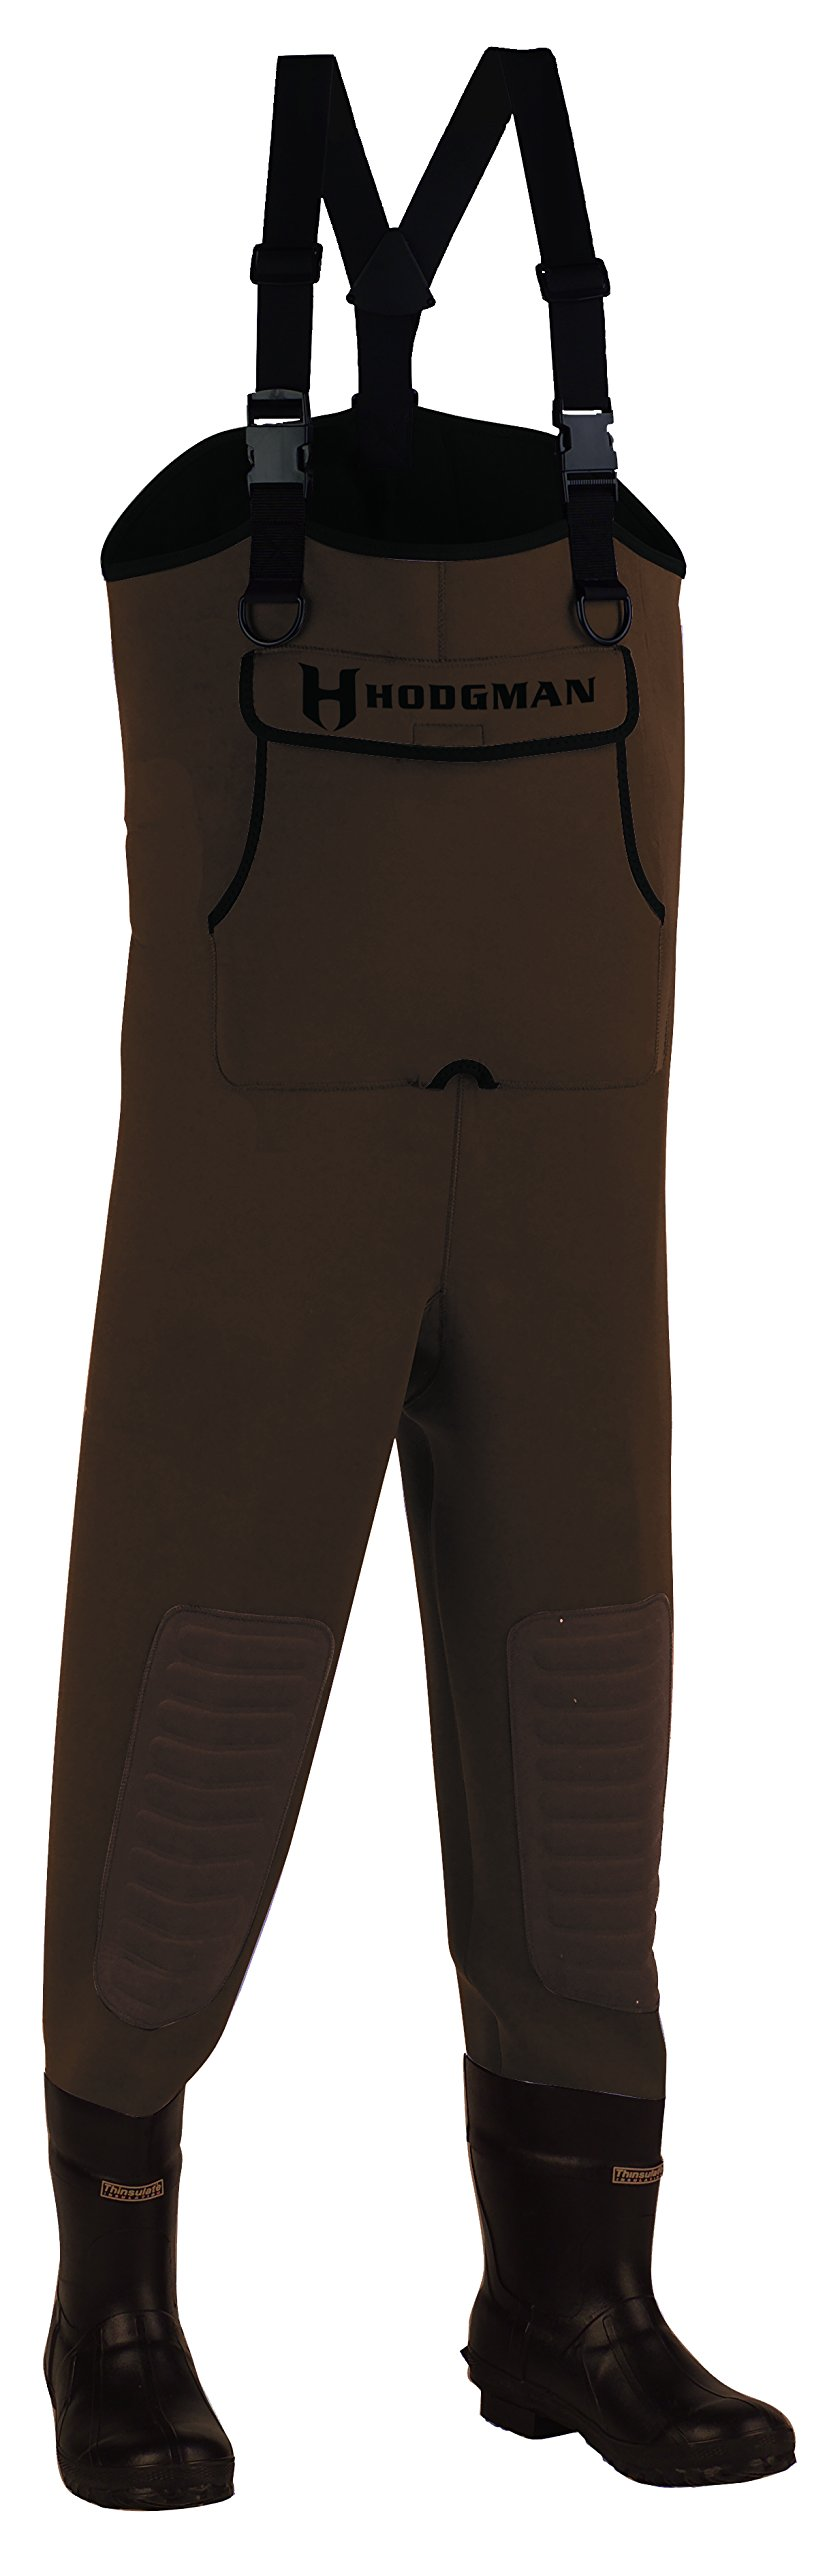 Superatv Gray Airman Waders//Riding Costume avec Bottes en caoutchouc-Taille 7 Small